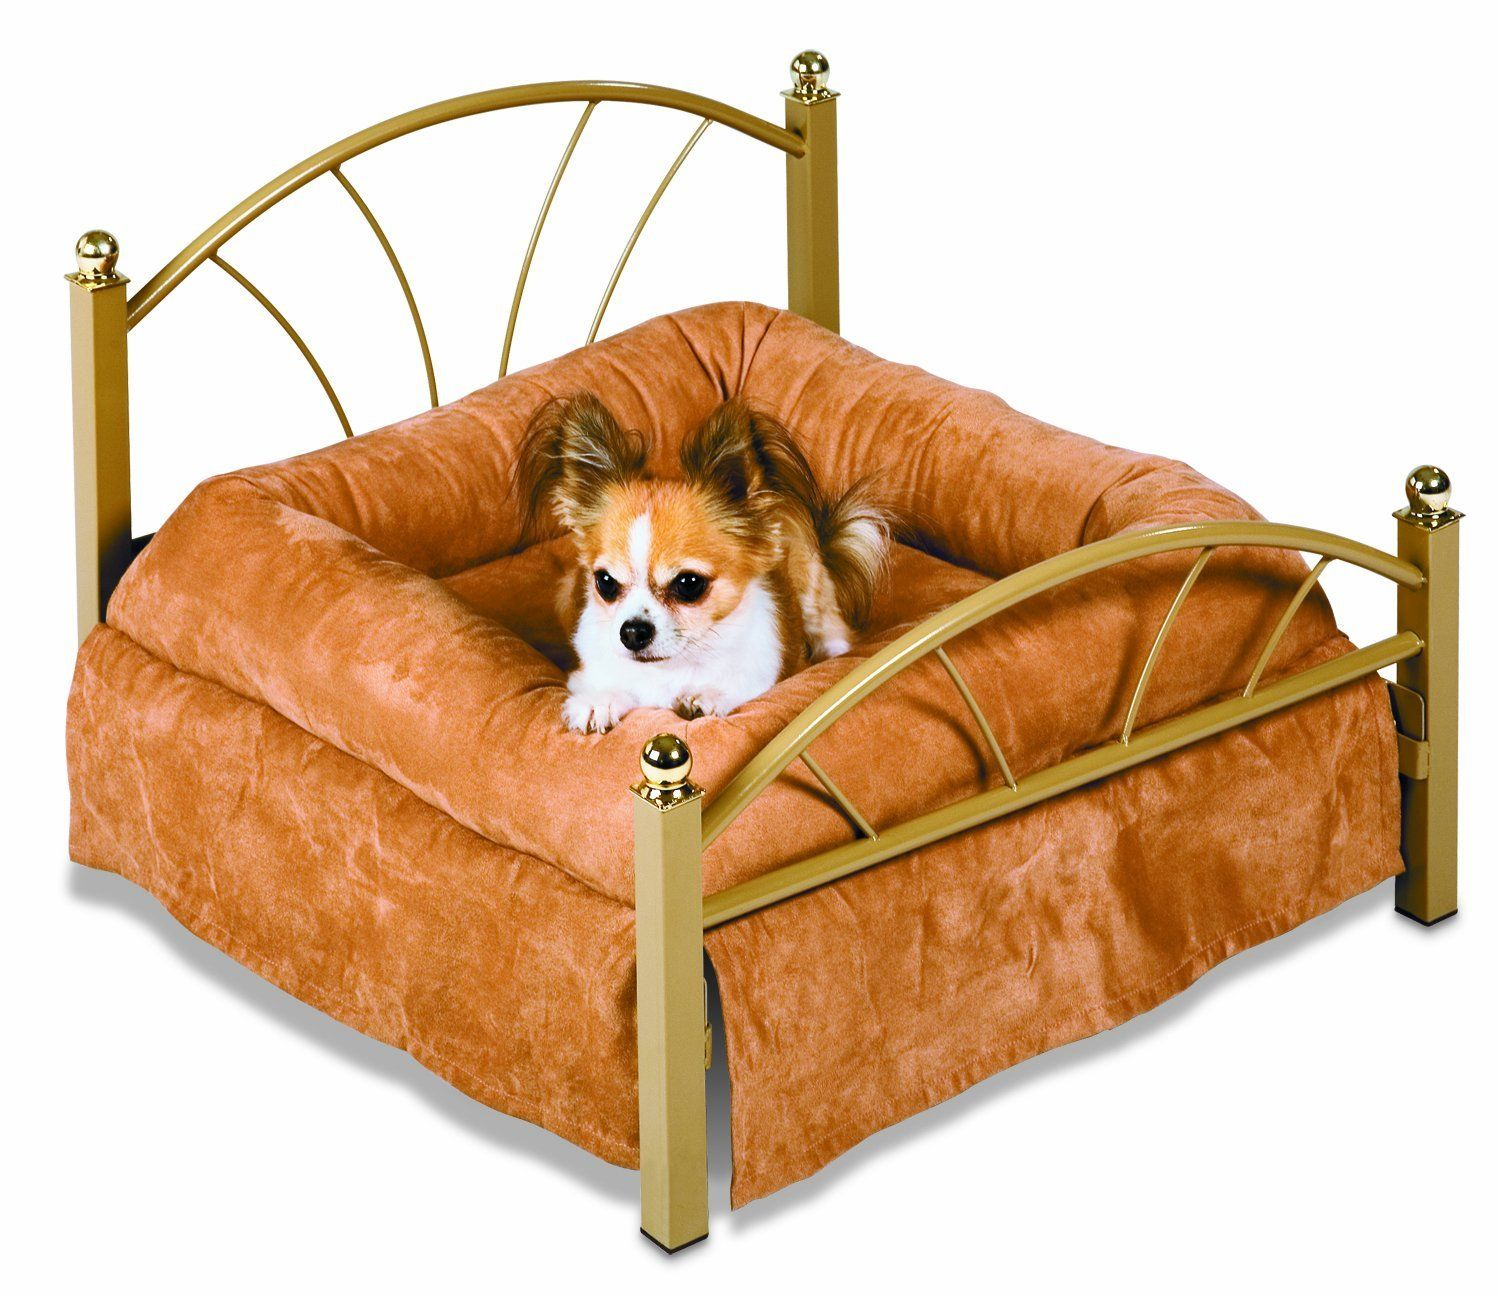 petmate nap of luxury pet bed small dog beds like human. Black Bedroom Furniture Sets. Home Design Ideas